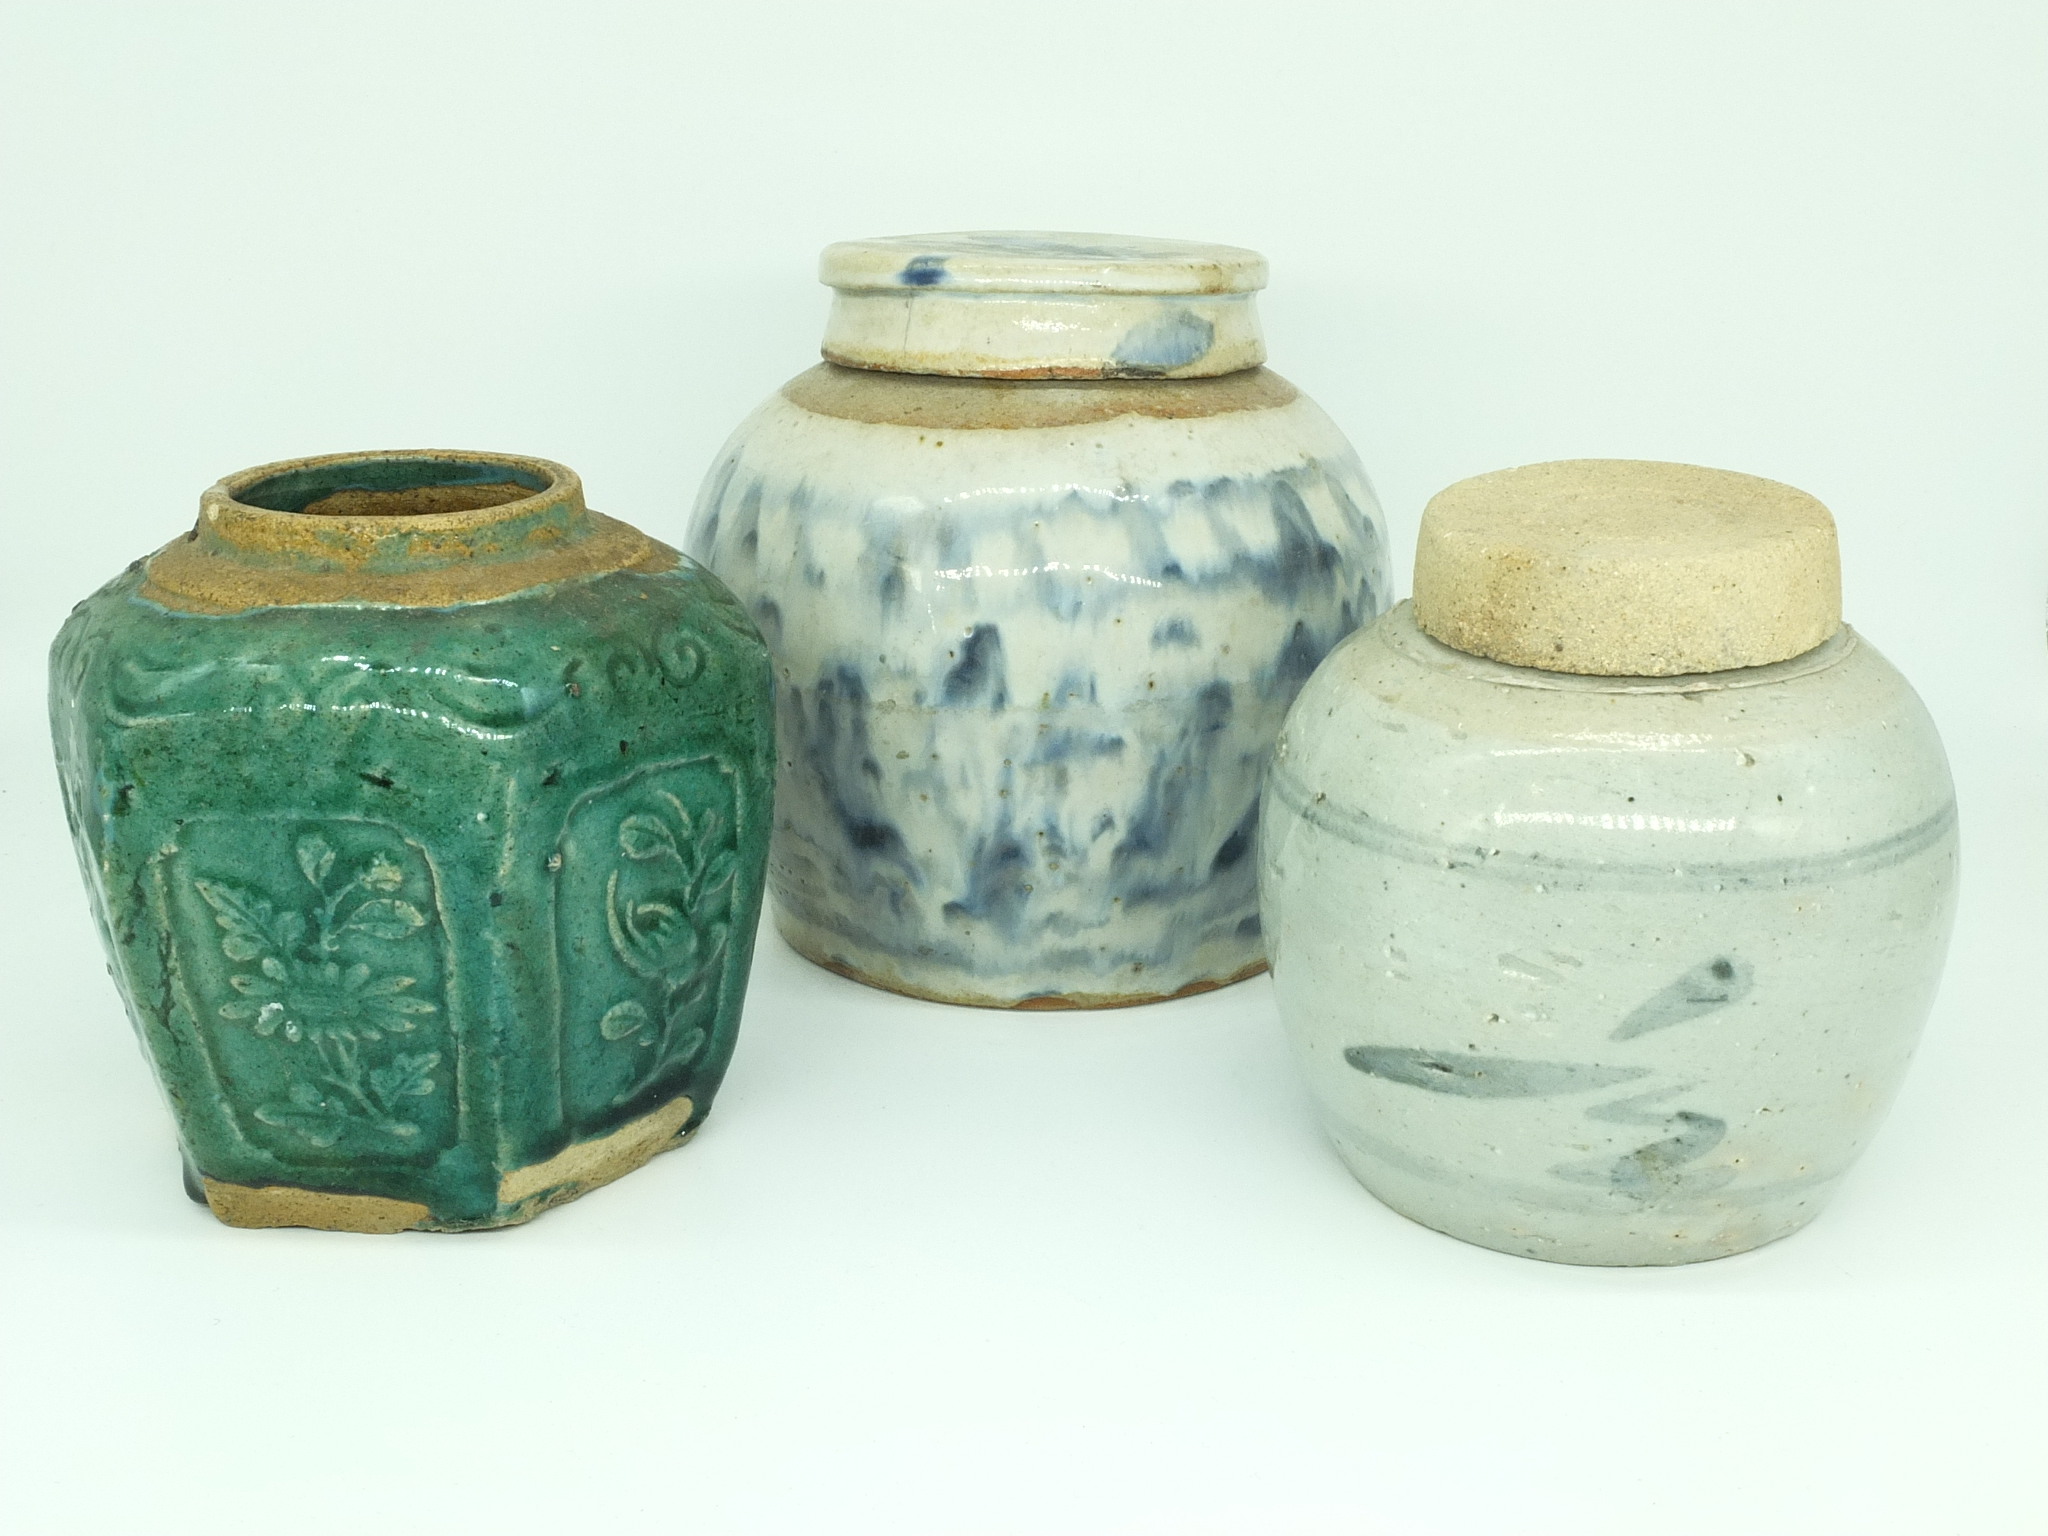 'Three Various Antique Chinese Jars'